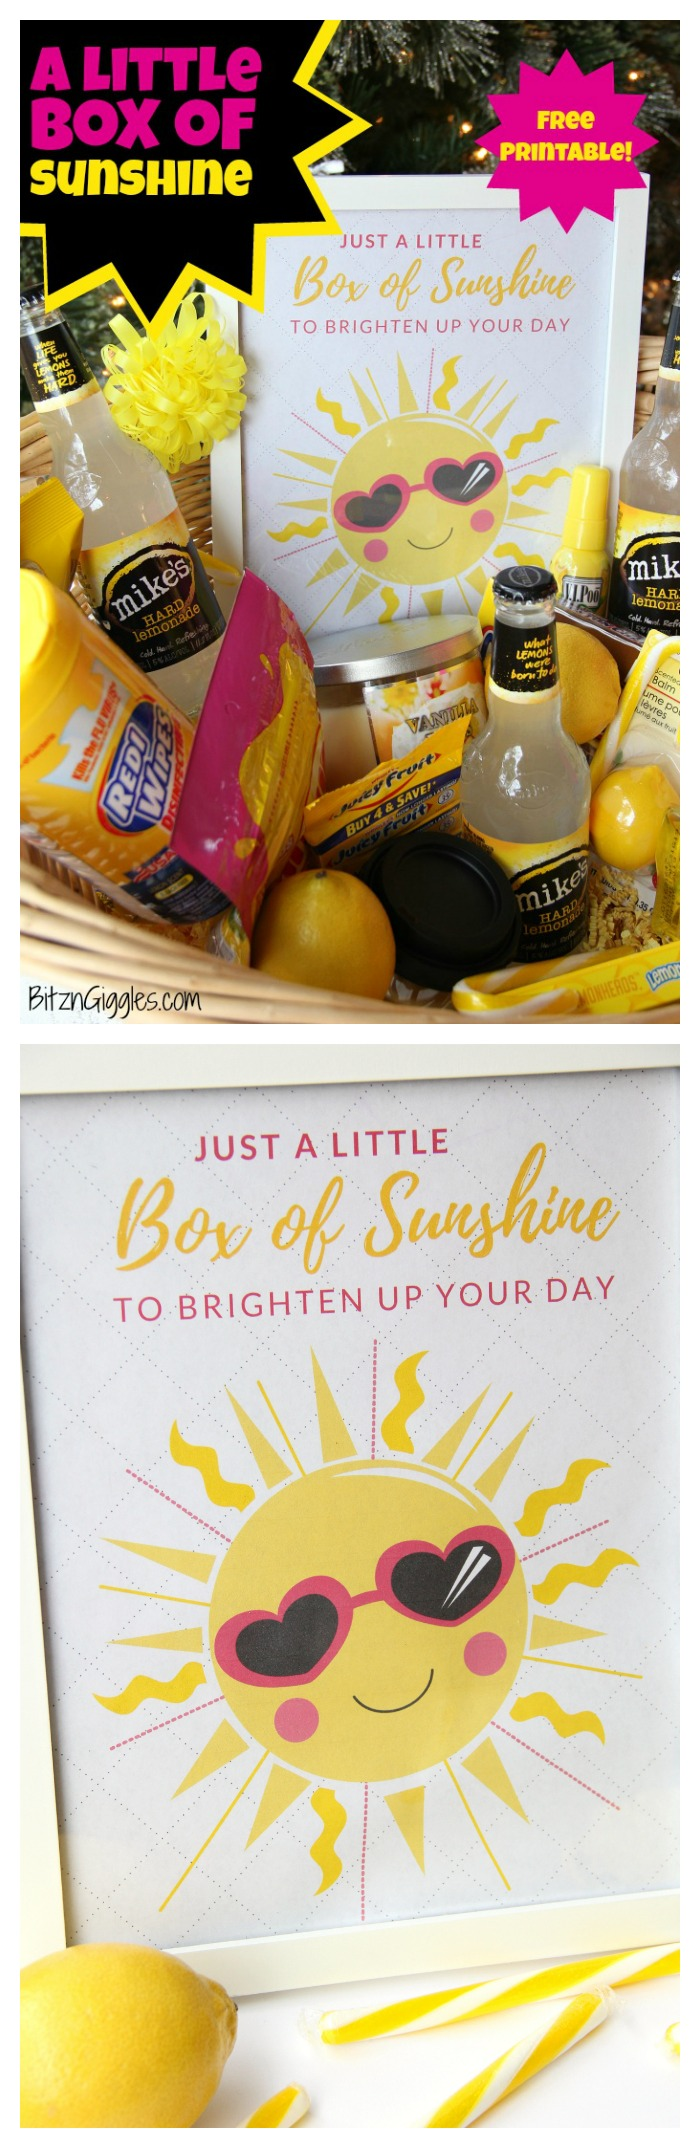 picture about Basket of Sunshine Printable referred to as A Very little Box of Sun With Printable - Bitz Giggles